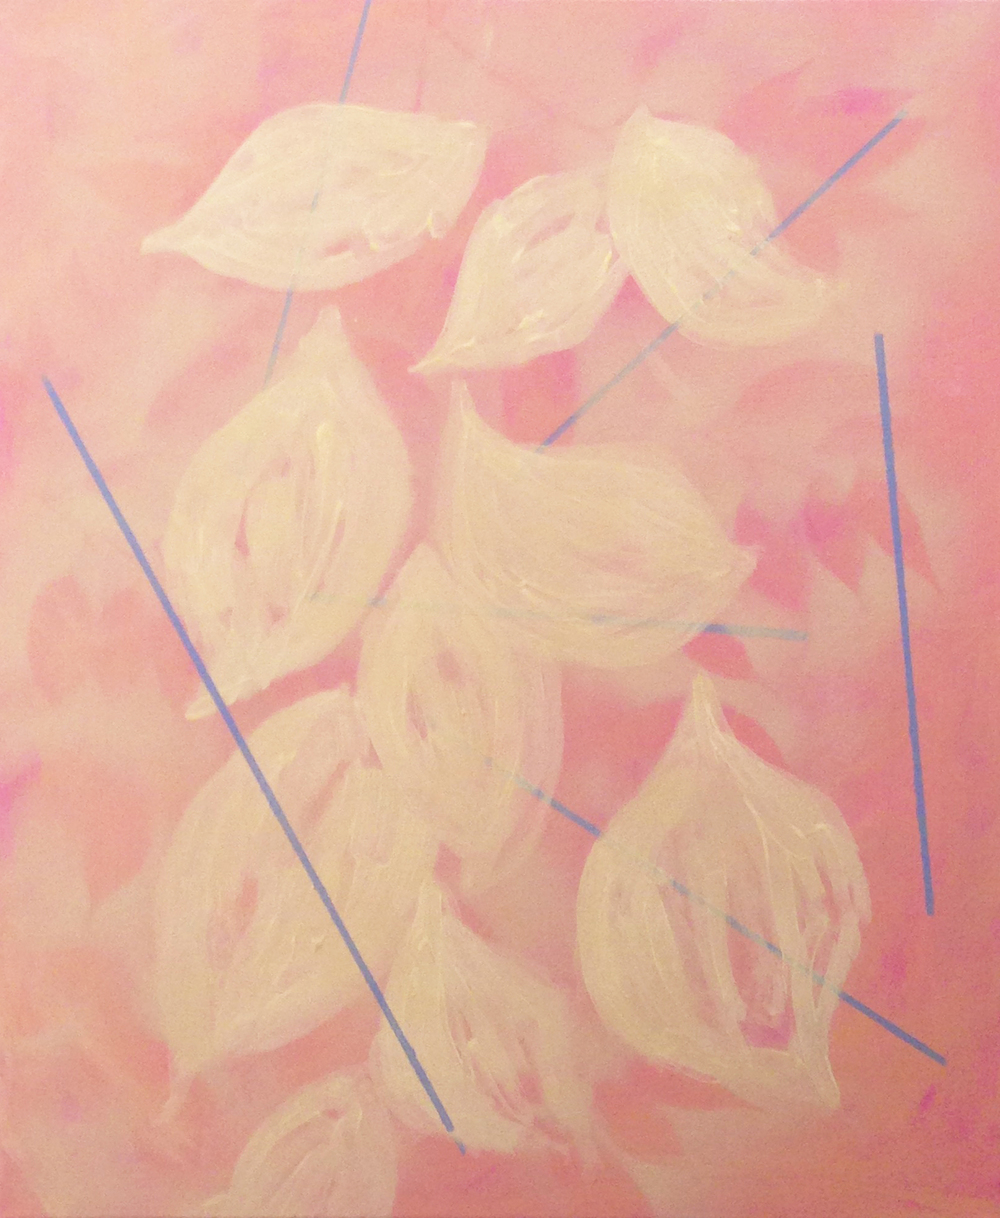 Fallen Leaves, 30x40cm, acrylic on canvas, 2015